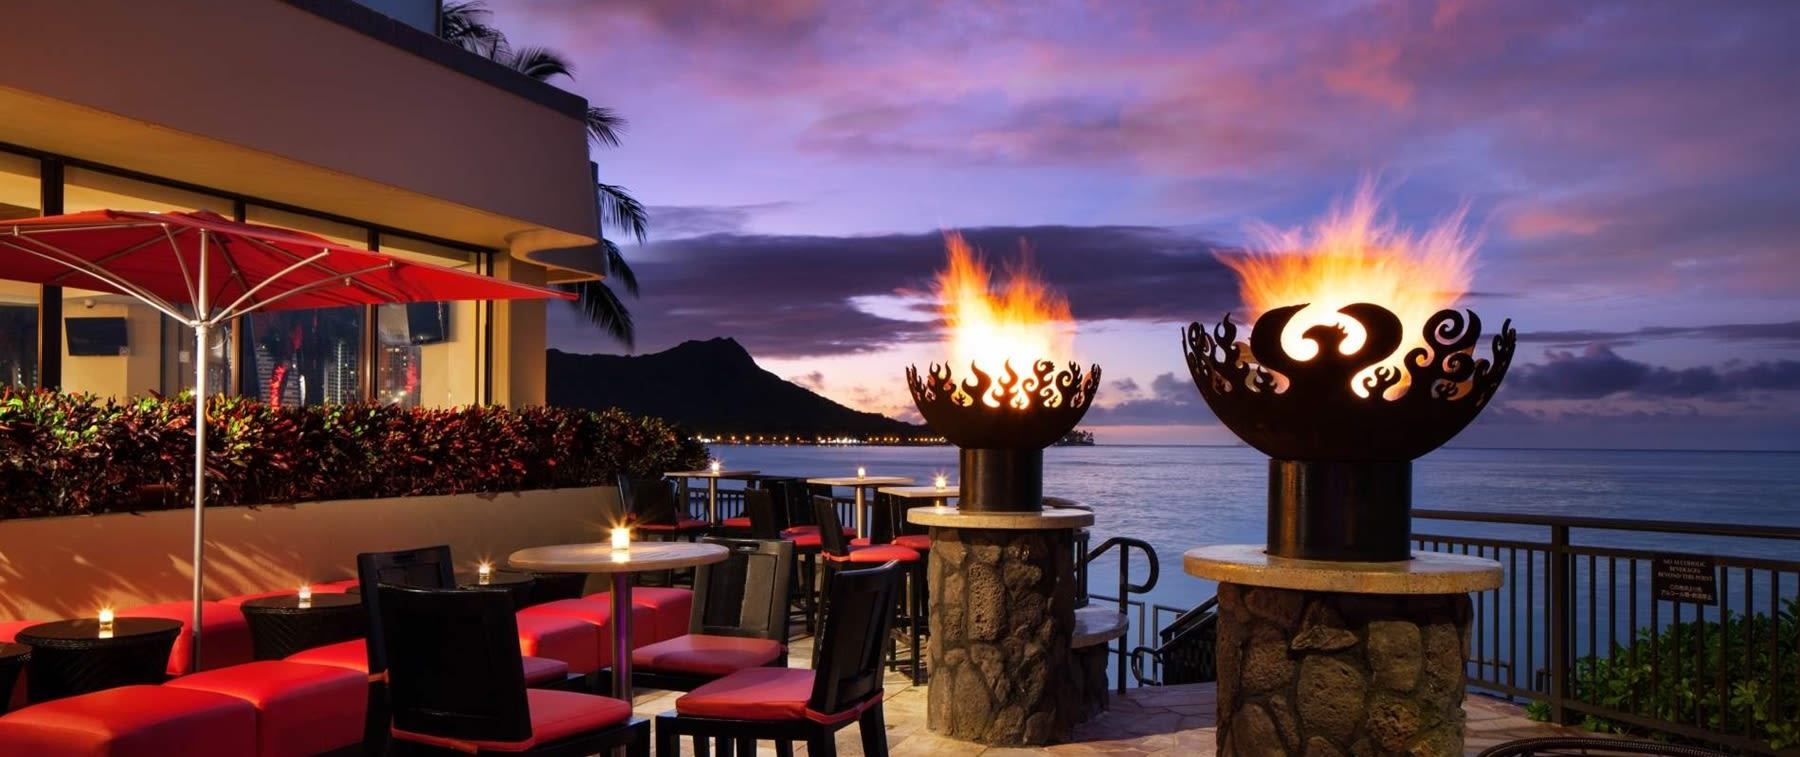 Fireplaces by John T Unger seen at RumFire, Honolulu - Great Bowl O' Fire